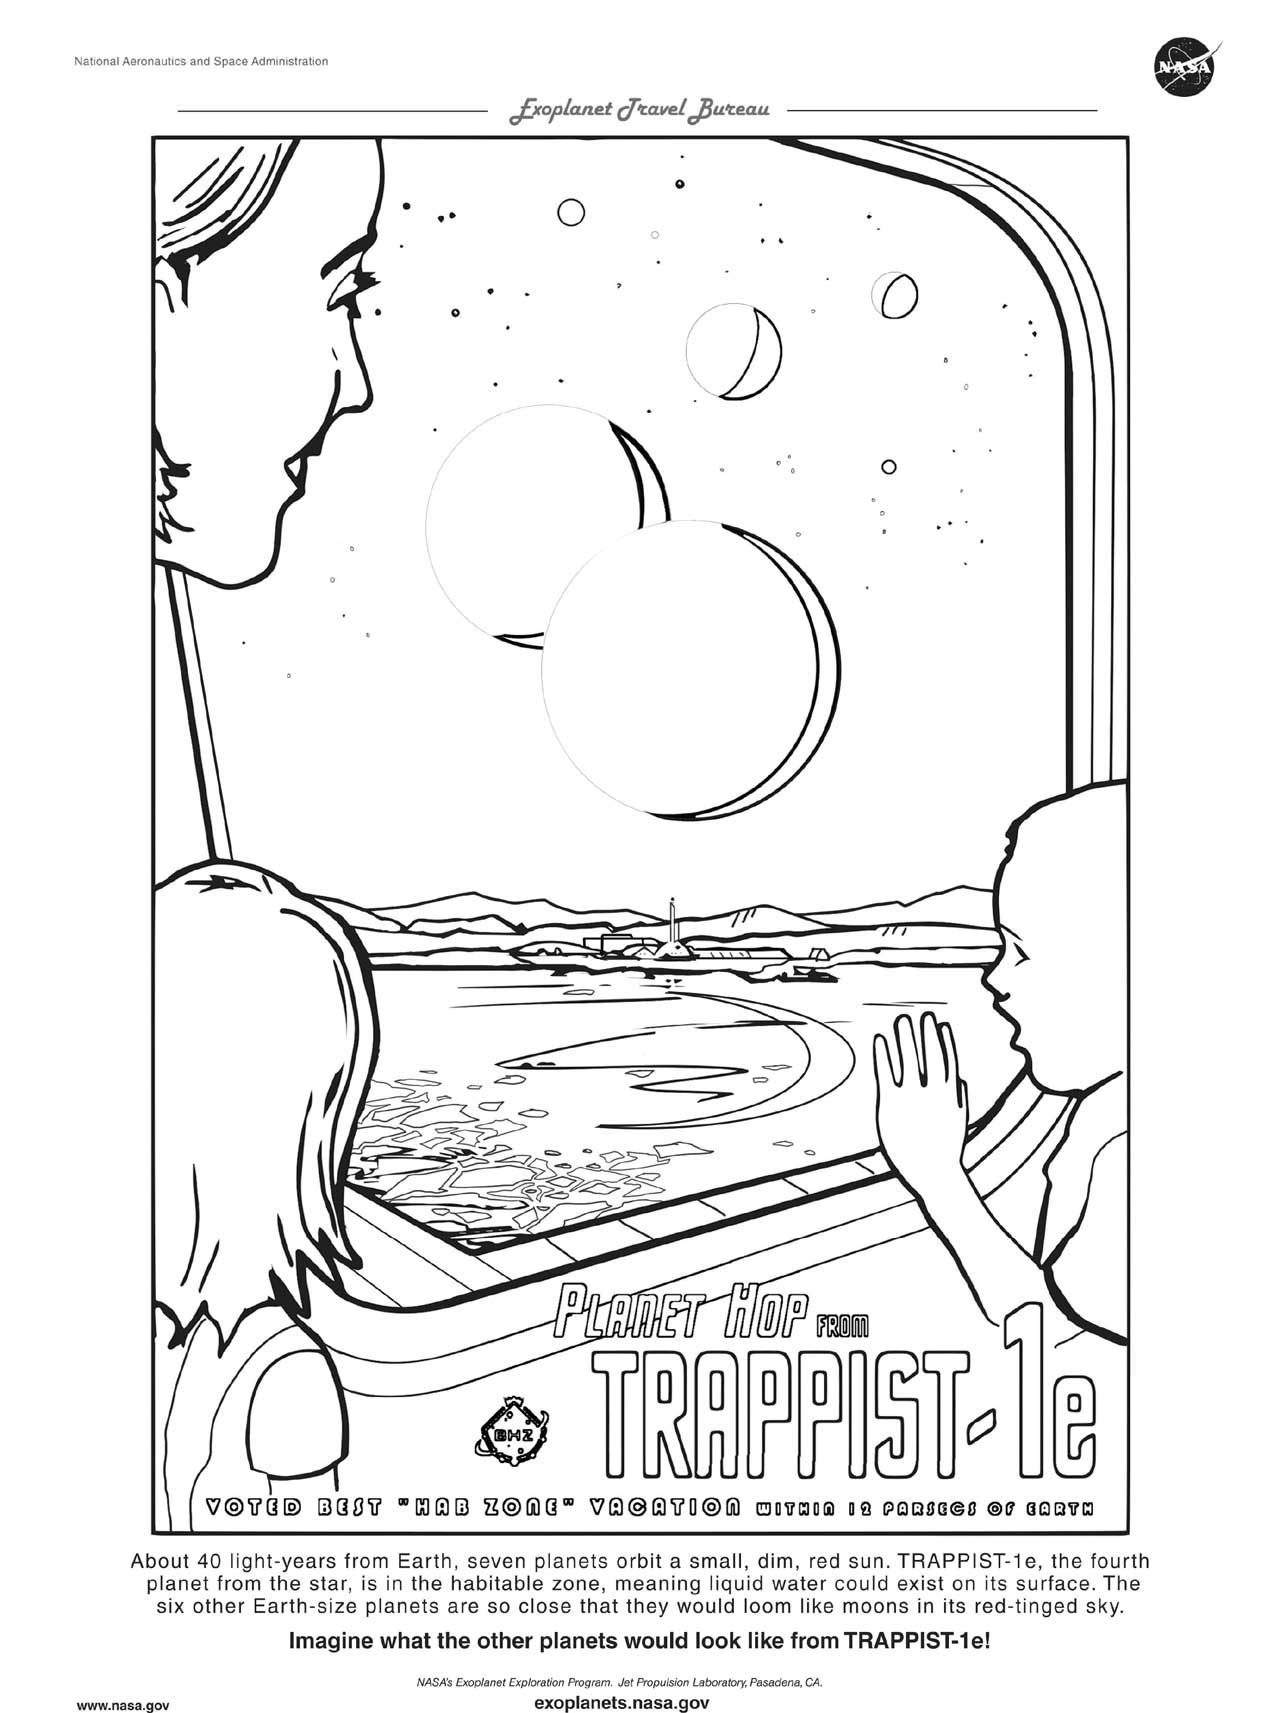 A downloadable version of a coloring page for TRAPPIST-1e.